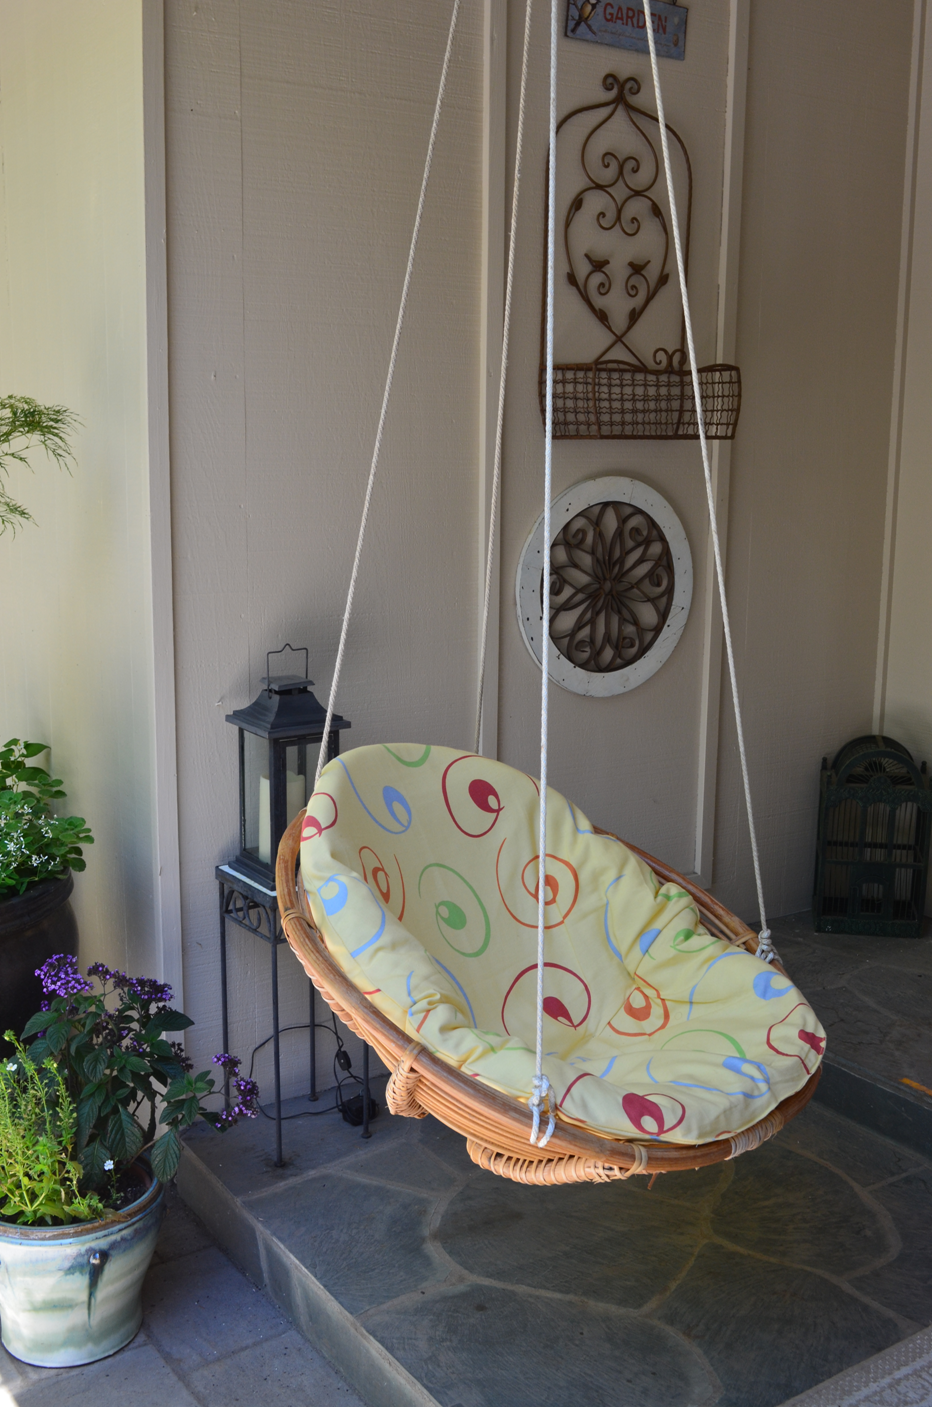 DIY swing/chair: Repurposed wicker chair turned into swing. I made this  swing from a $20.00 thrift store find. After removing the legs and  re-wrapping the ...